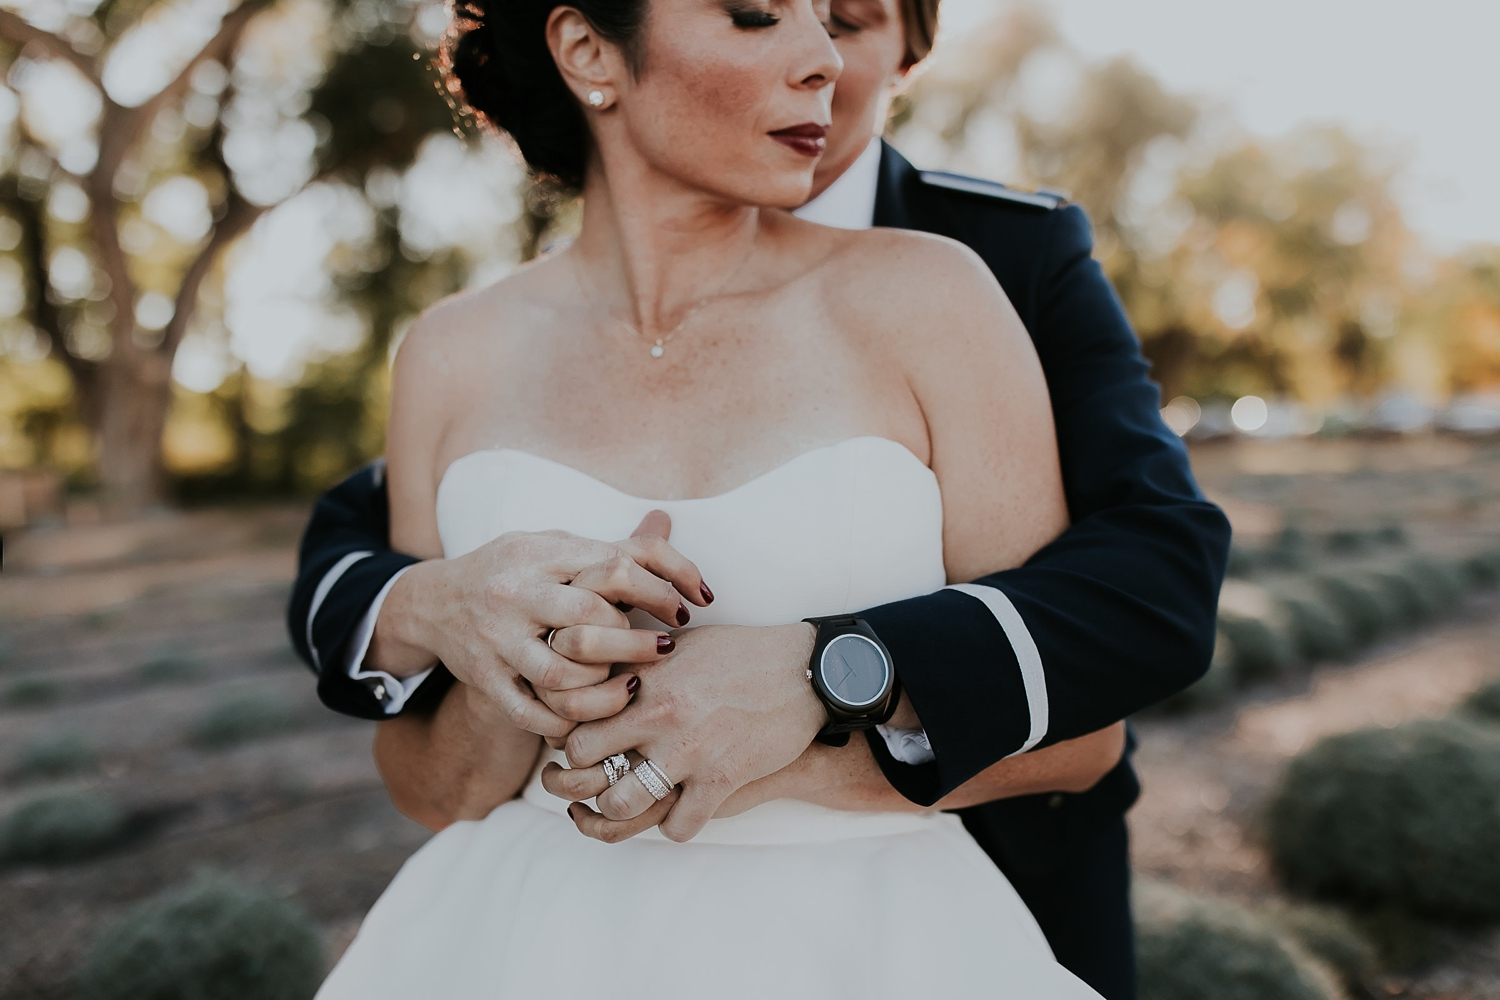 Alicia+lucia+photography+-+albuquerque+wedding+photographer+-+santa+fe+wedding+photography+-+new+mexico+wedding+photographer+-+los+poblanos+wedding+-+los+poblanos+fall+wedding+-+los+poblanos+october+wedding_0088.jpg